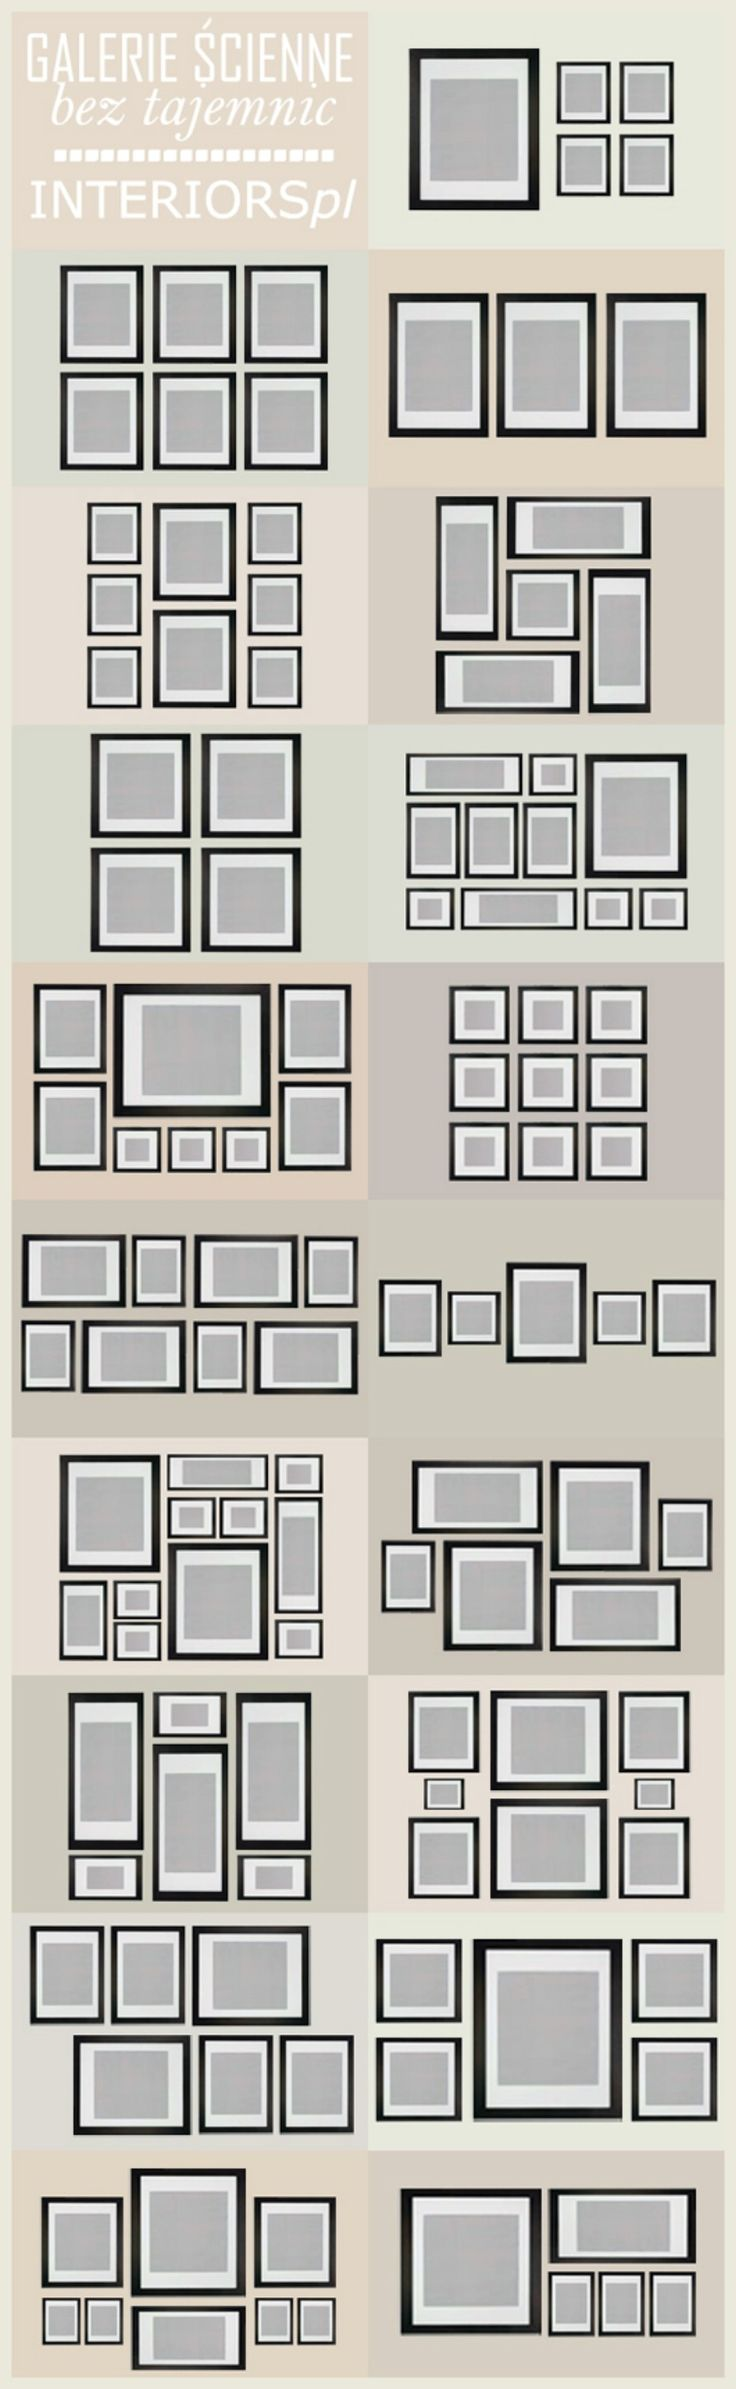 Plan a gallery wall   50 Amazingly Clever Cheat Sheets To Simplify Home  Decorating. 17 Best ideas about Wall Design on Pinterest   Design  Wall